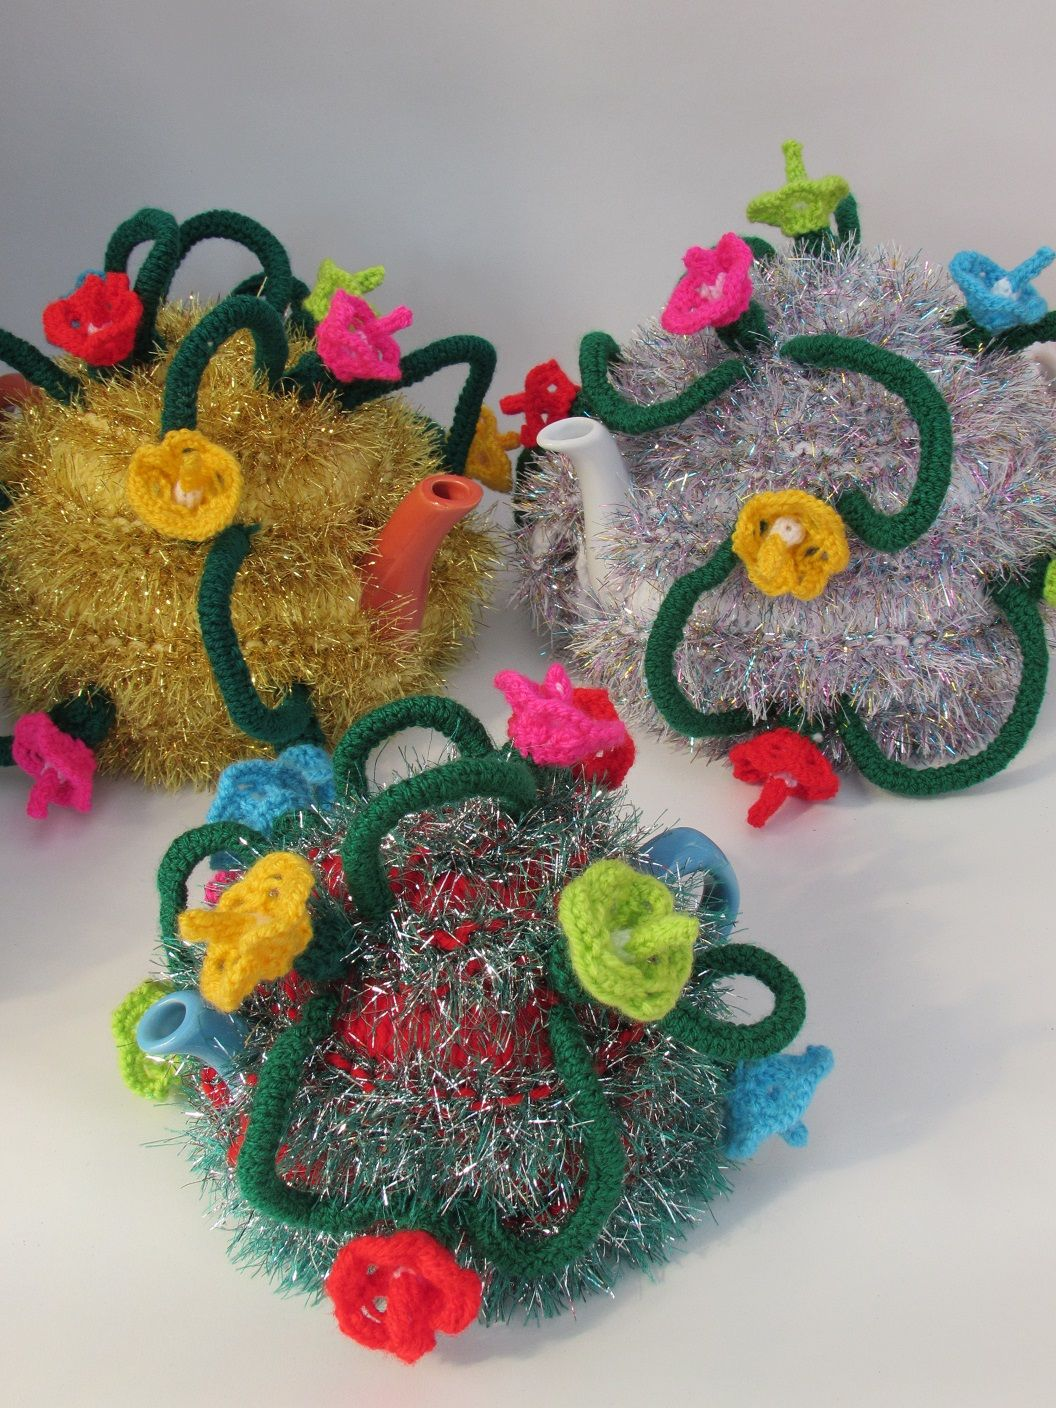 Christmas tinsel and fairy lights tea cosy knitting pattern with christmas tinsel and fairy lights tea cosy knitting pattern with led lit option check out bankloansurffo Choice Image